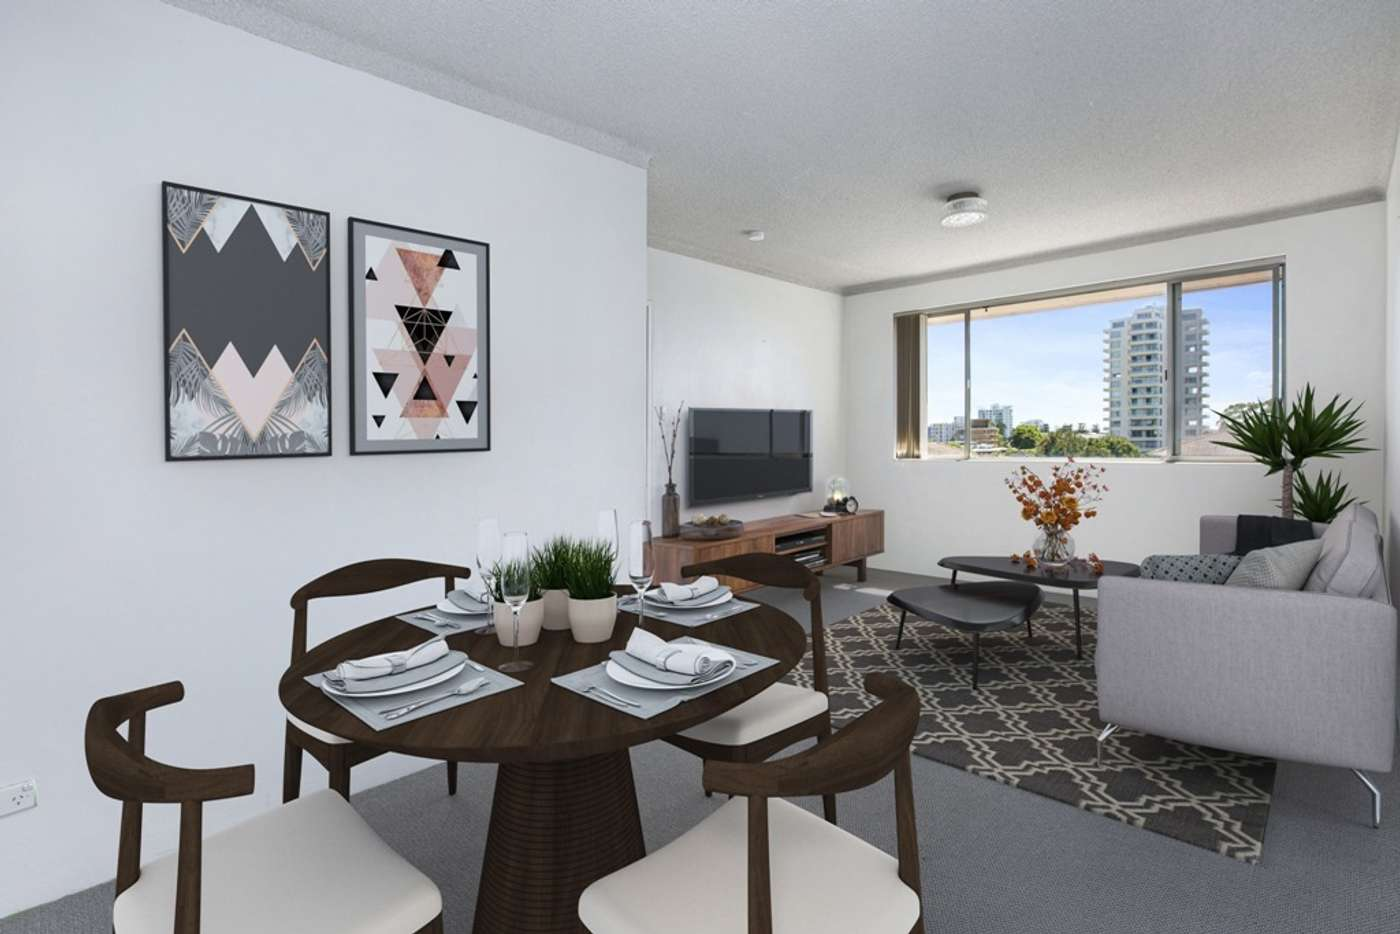 Main view of Homely apartment listing, 11/49-51 Parramatta Street, Cronulla NSW 2230